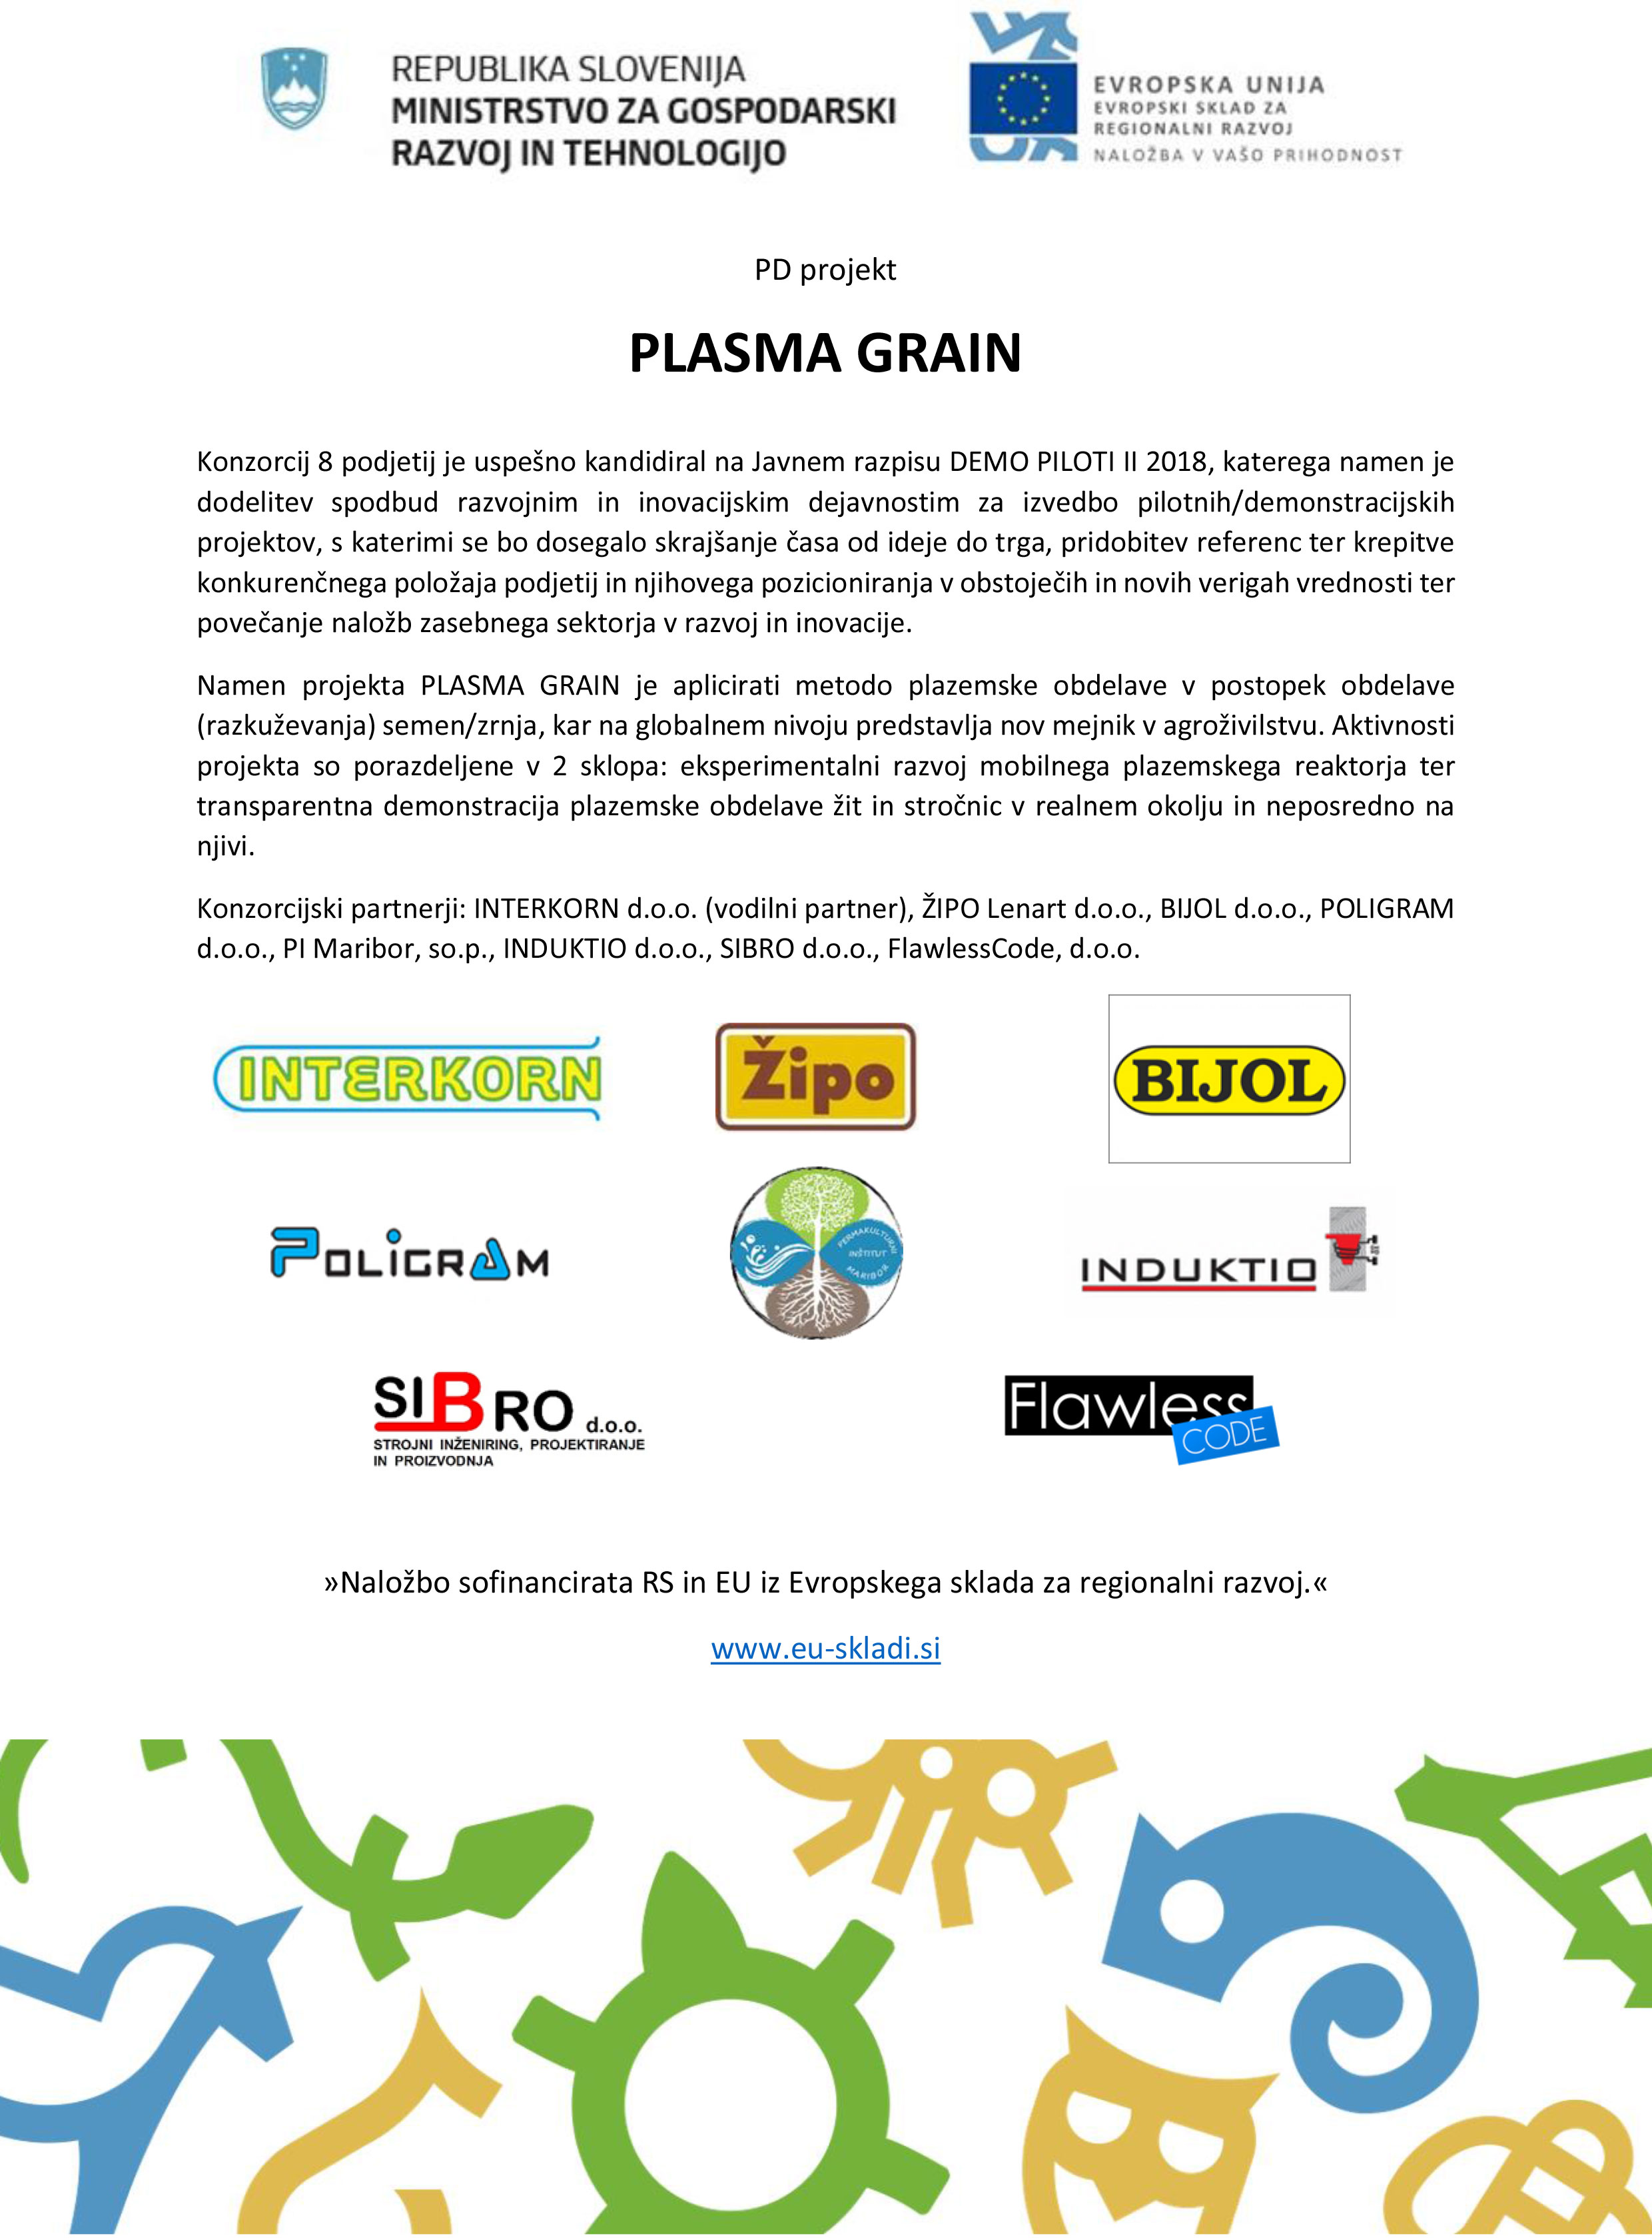 Project Plasma grain